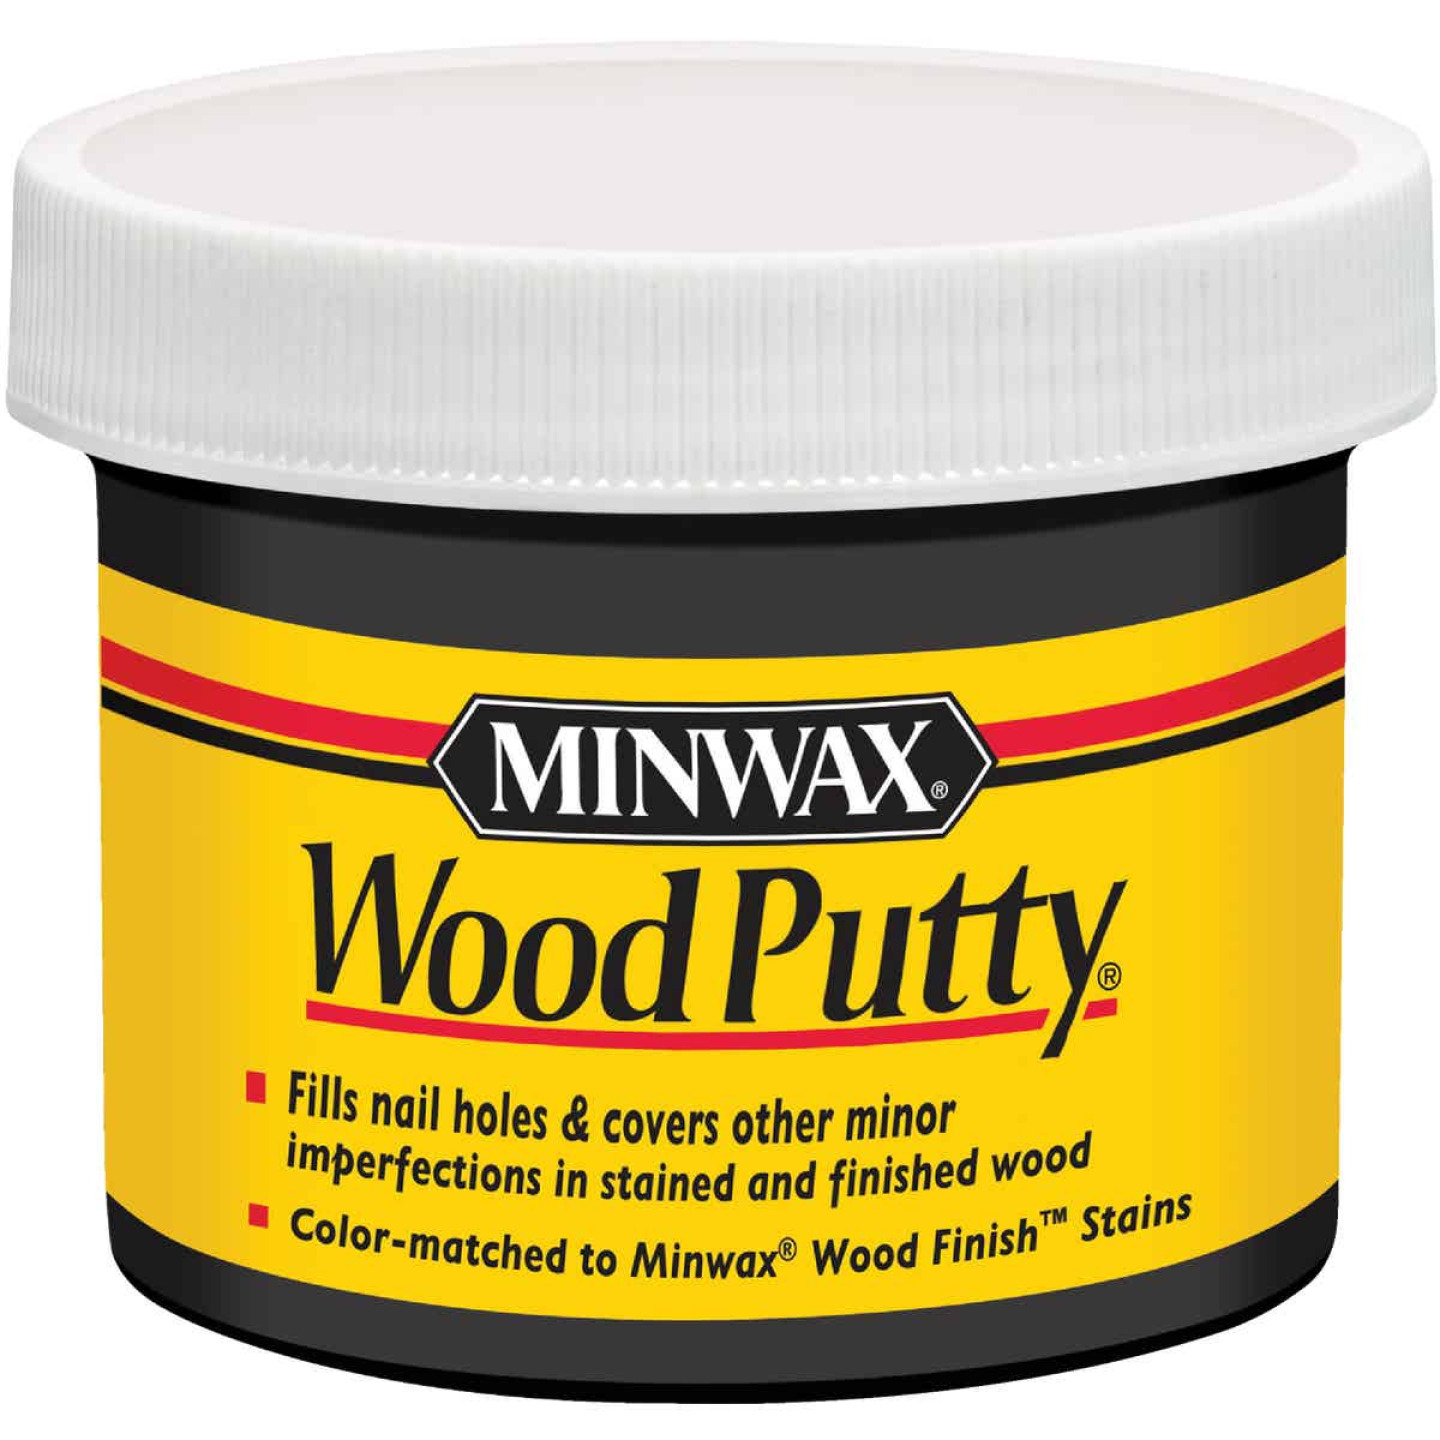 Minwax 3.75 Oz. Ebony Wood Putty Image 1